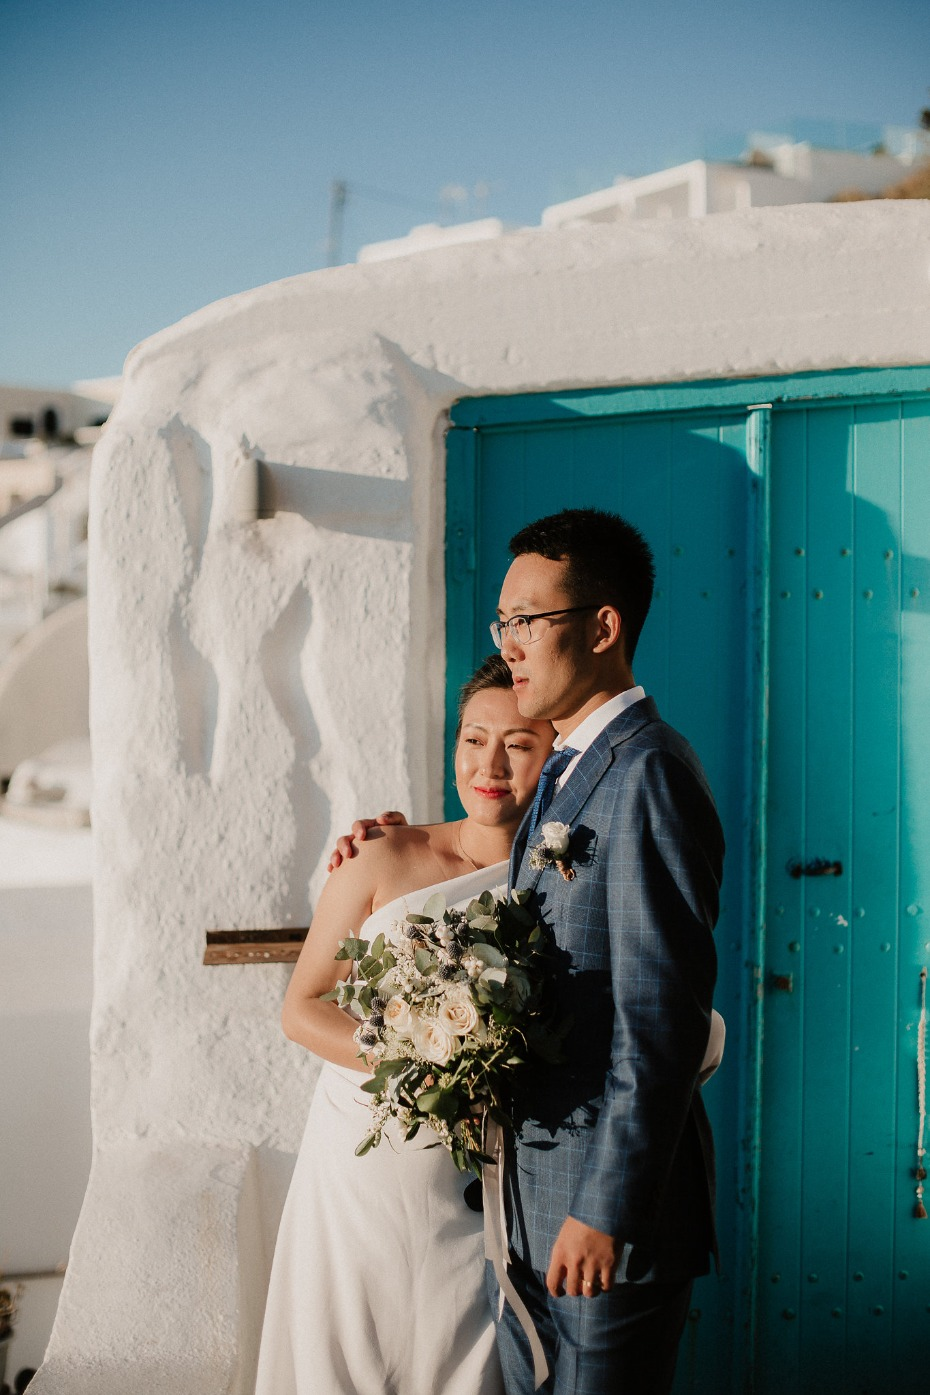 Beautiful wedding in Greece